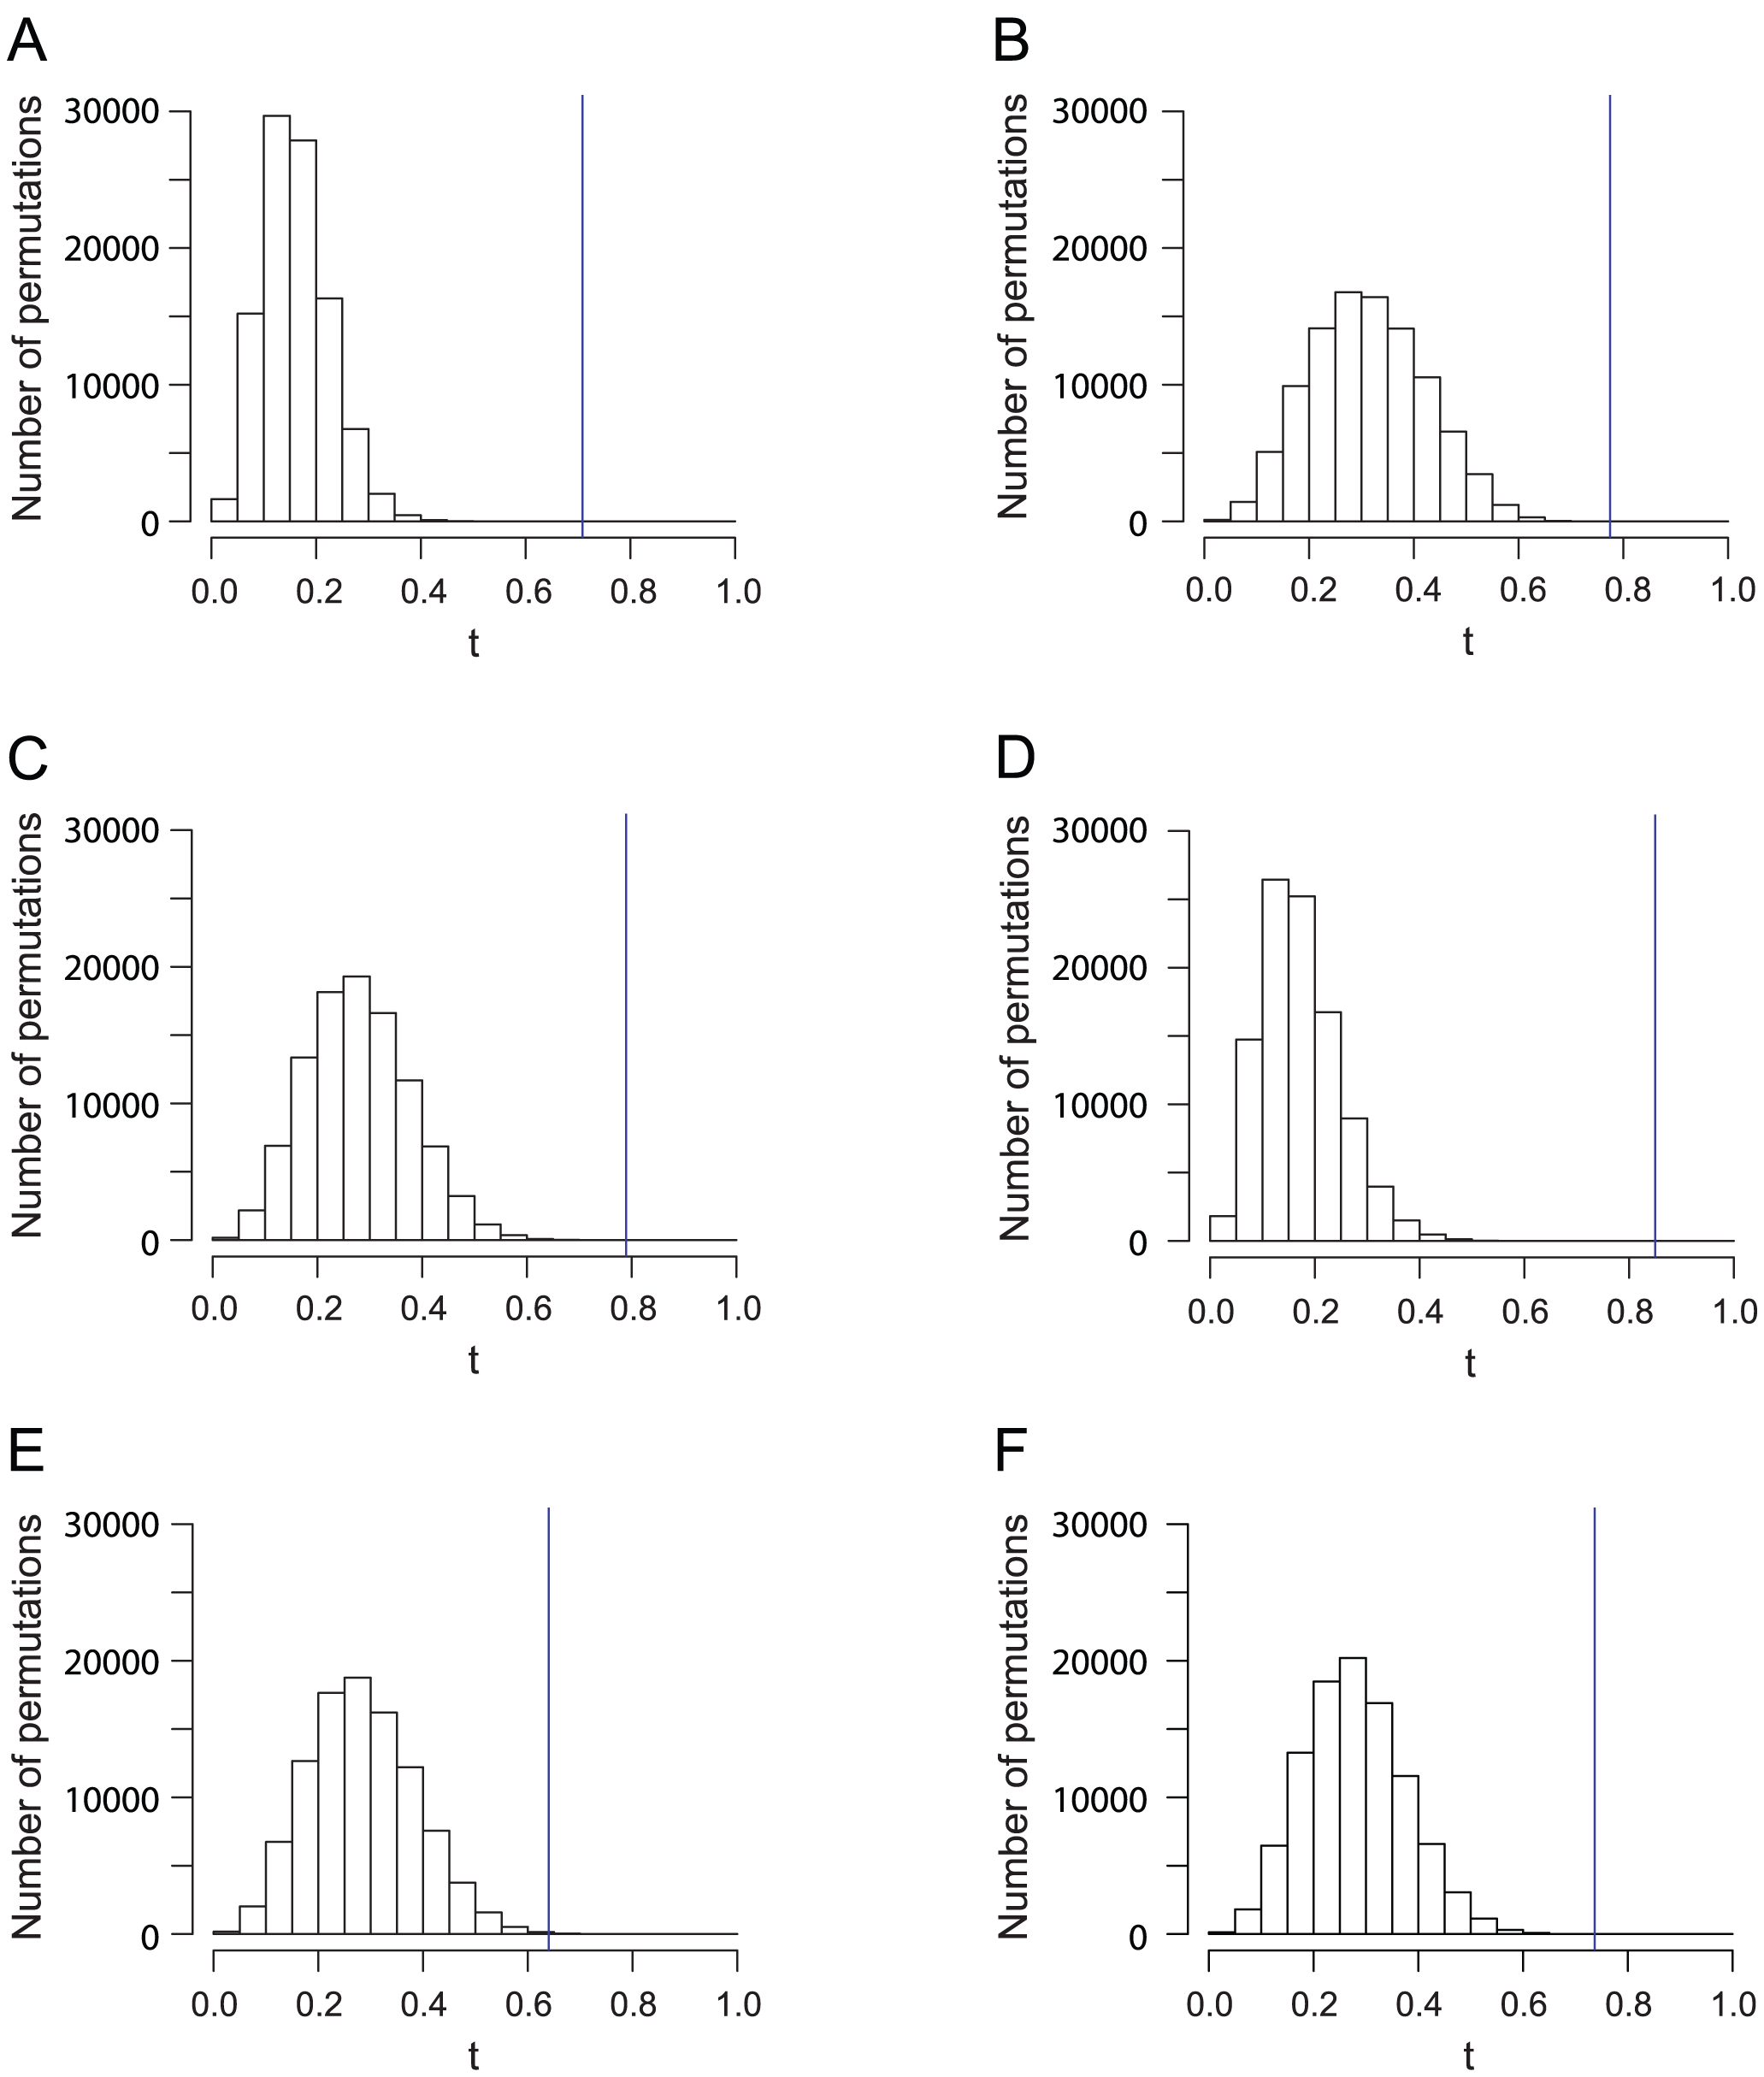 Histograms of the Procrustes similarity  of 100,000 permutations for analyses in <em class=&quot;ref&quot;>Figure 1</em>, <em class=&quot;ref&quot;>Figure 2</em>, <em class=&quot;ref&quot;>Figure 3</em>, <em class=&quot;ref&quot;>Figure 4</em>, <em class=&quot;ref&quot;>Figure 5</em>, and <em class=&quot;ref&quot;>Figure 6</em><b>.</b>